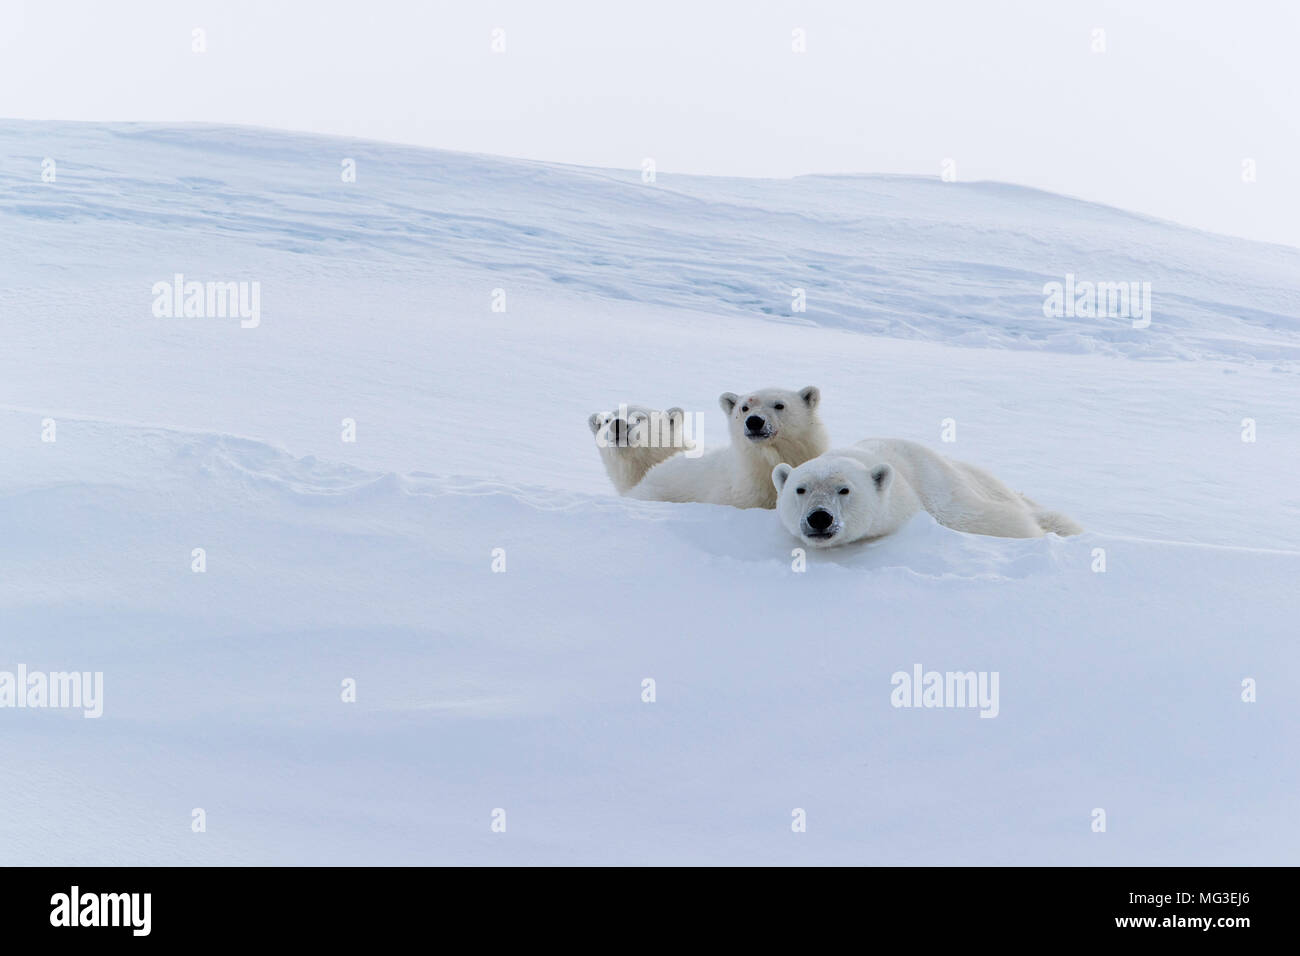 Mother polar bear and 2 yearling cubs lying down and watching from an iceberg, Baffin Island, Canada, nunavut, arctic - Stock Image